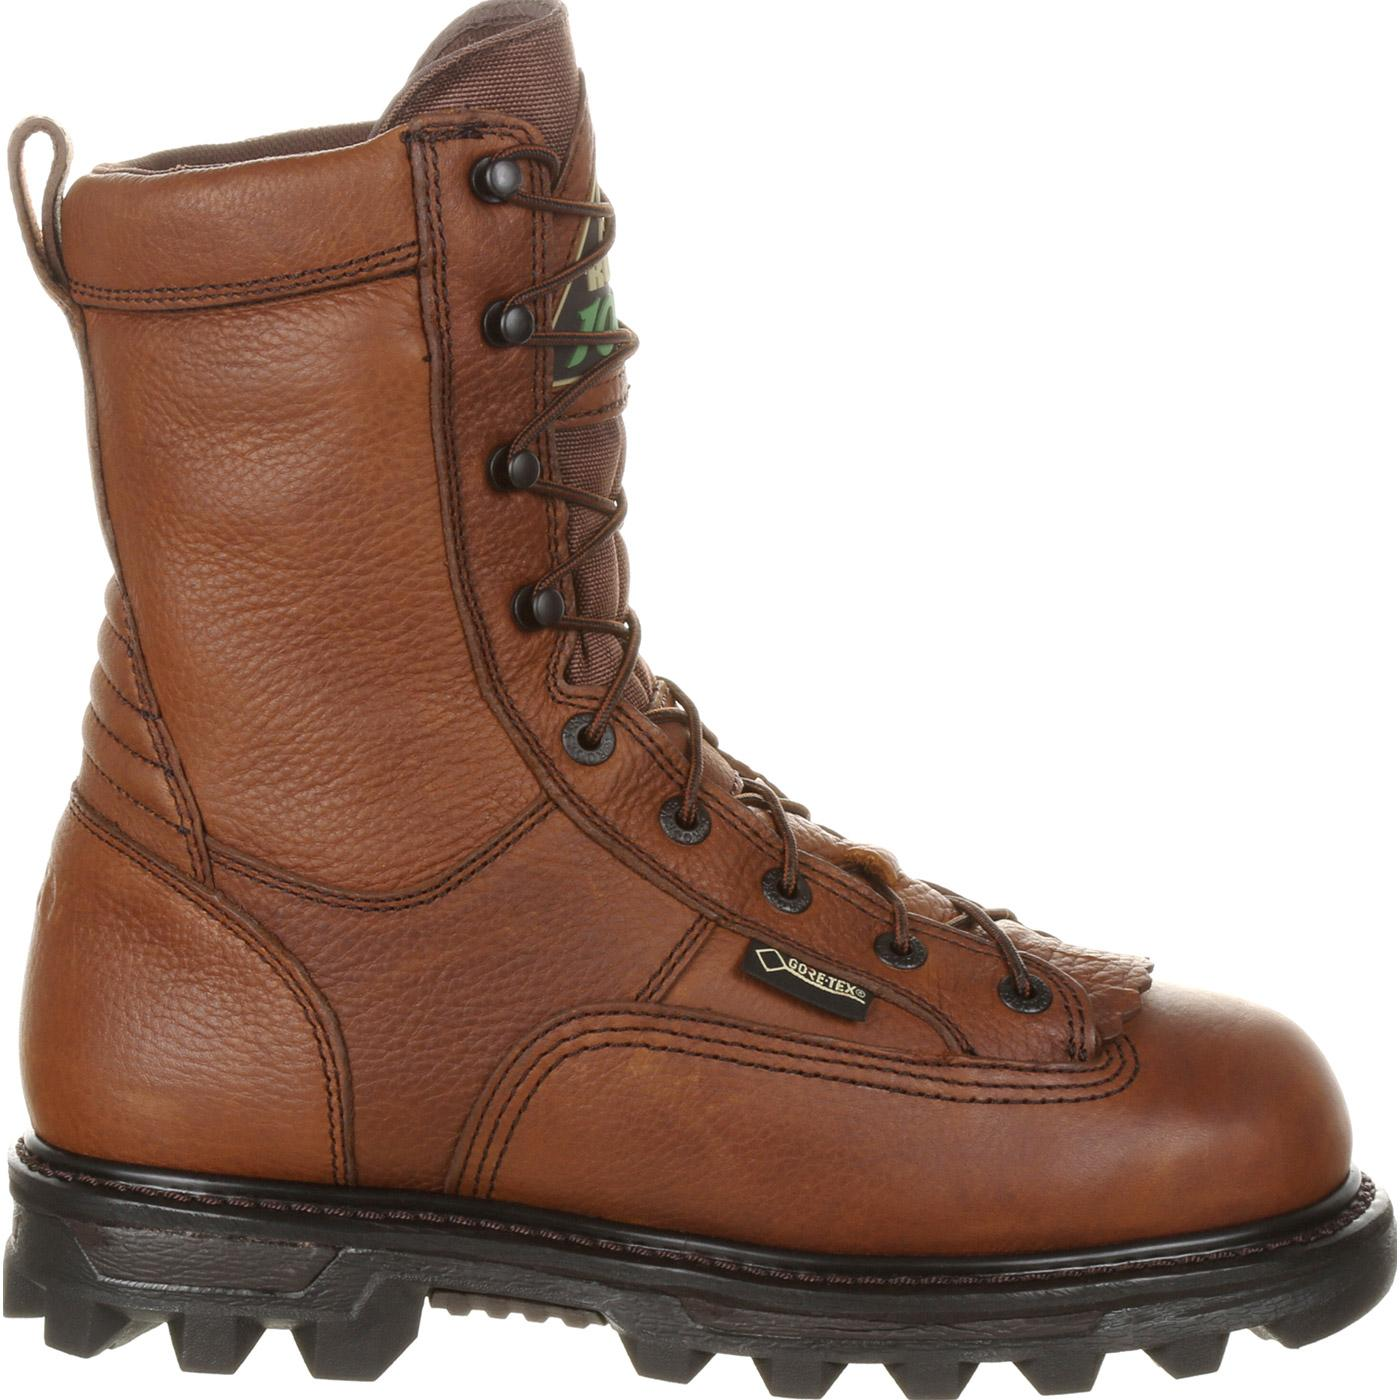 bc78a441a626e Rocky BearClaw 3D Insulated Waterproof Outdoor Boot, #9234